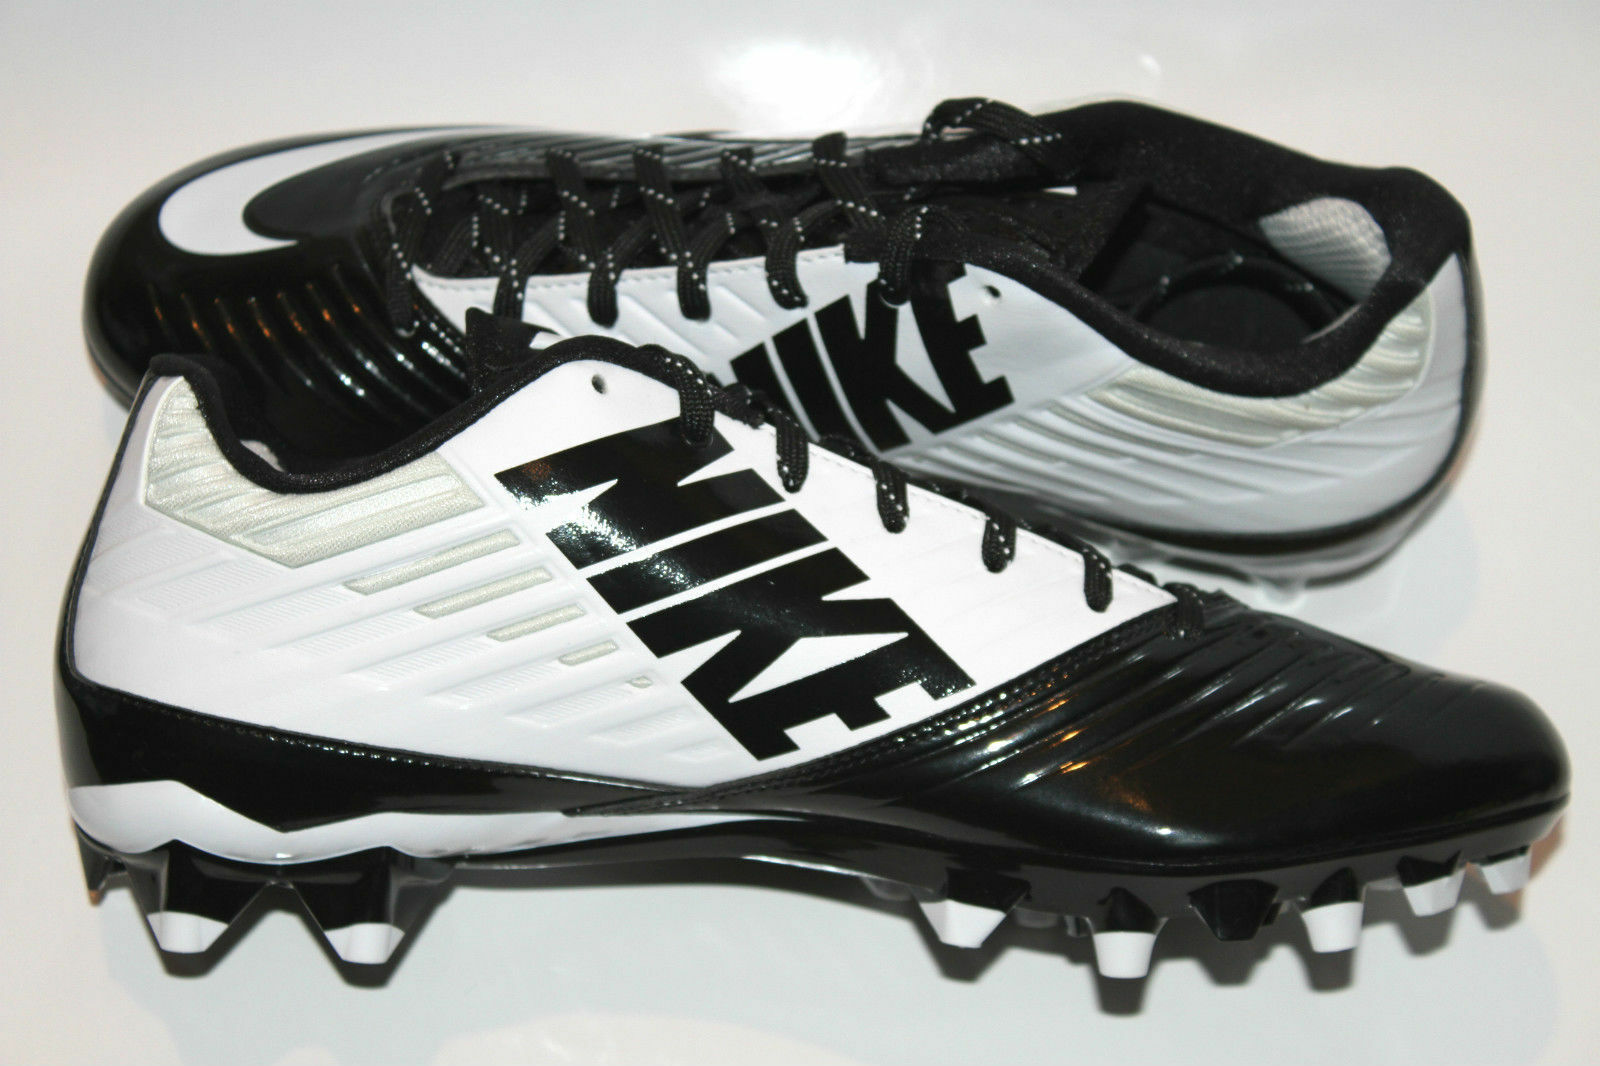 Nike Men's Vapor Speed Low Football Cleats Shoes Comfortable